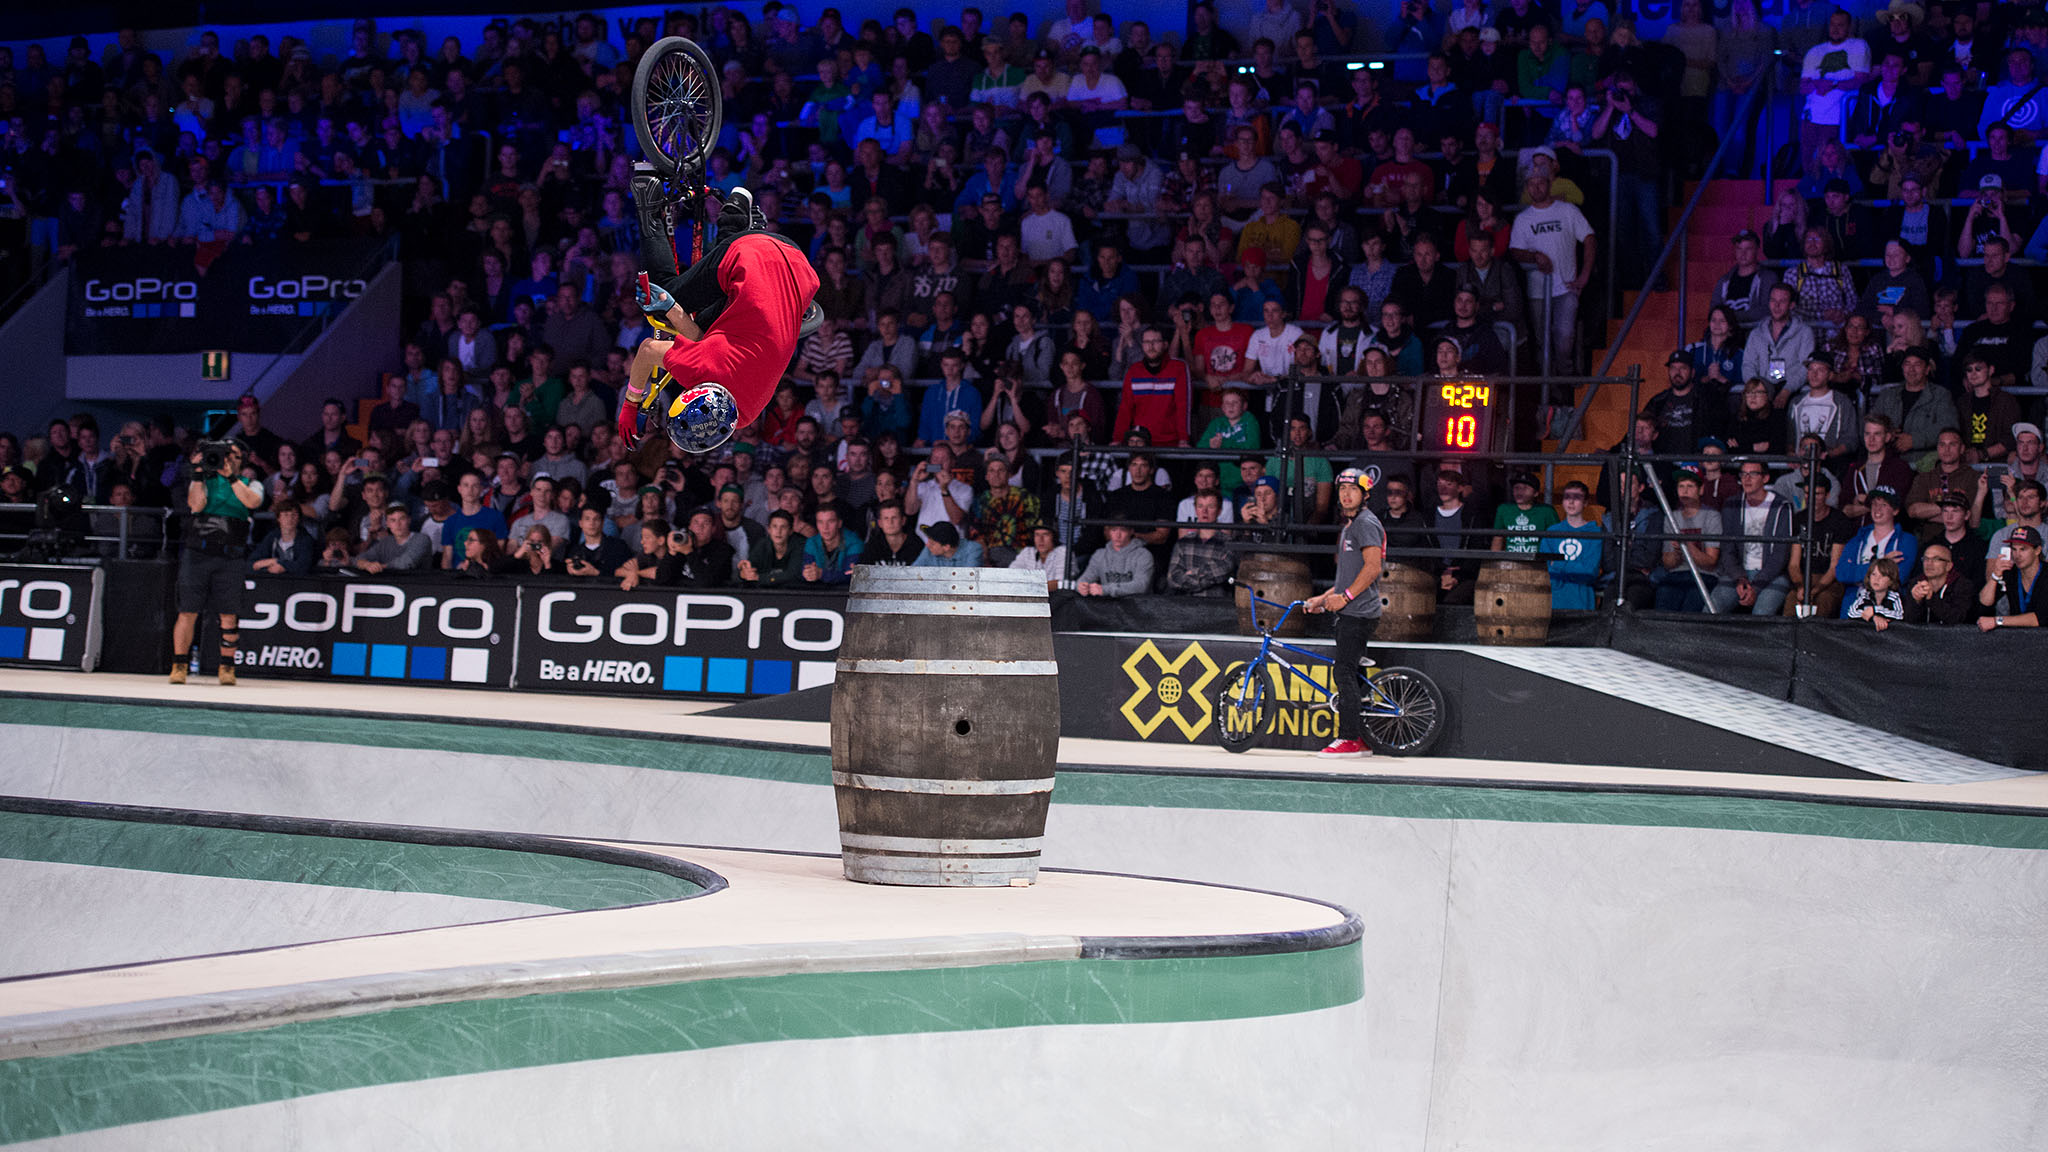 In previous years, Daniel Dhers was a perennial favorite to win X Games gold in BMX Park. This year, through X Games Foz and X Games Barcelona, Dhers seemed to have lost his footing, placing off the podium at both stops. That changed at X Games Munich. Dhers earned his first gold medal of the year with moves such as this turndown flair.